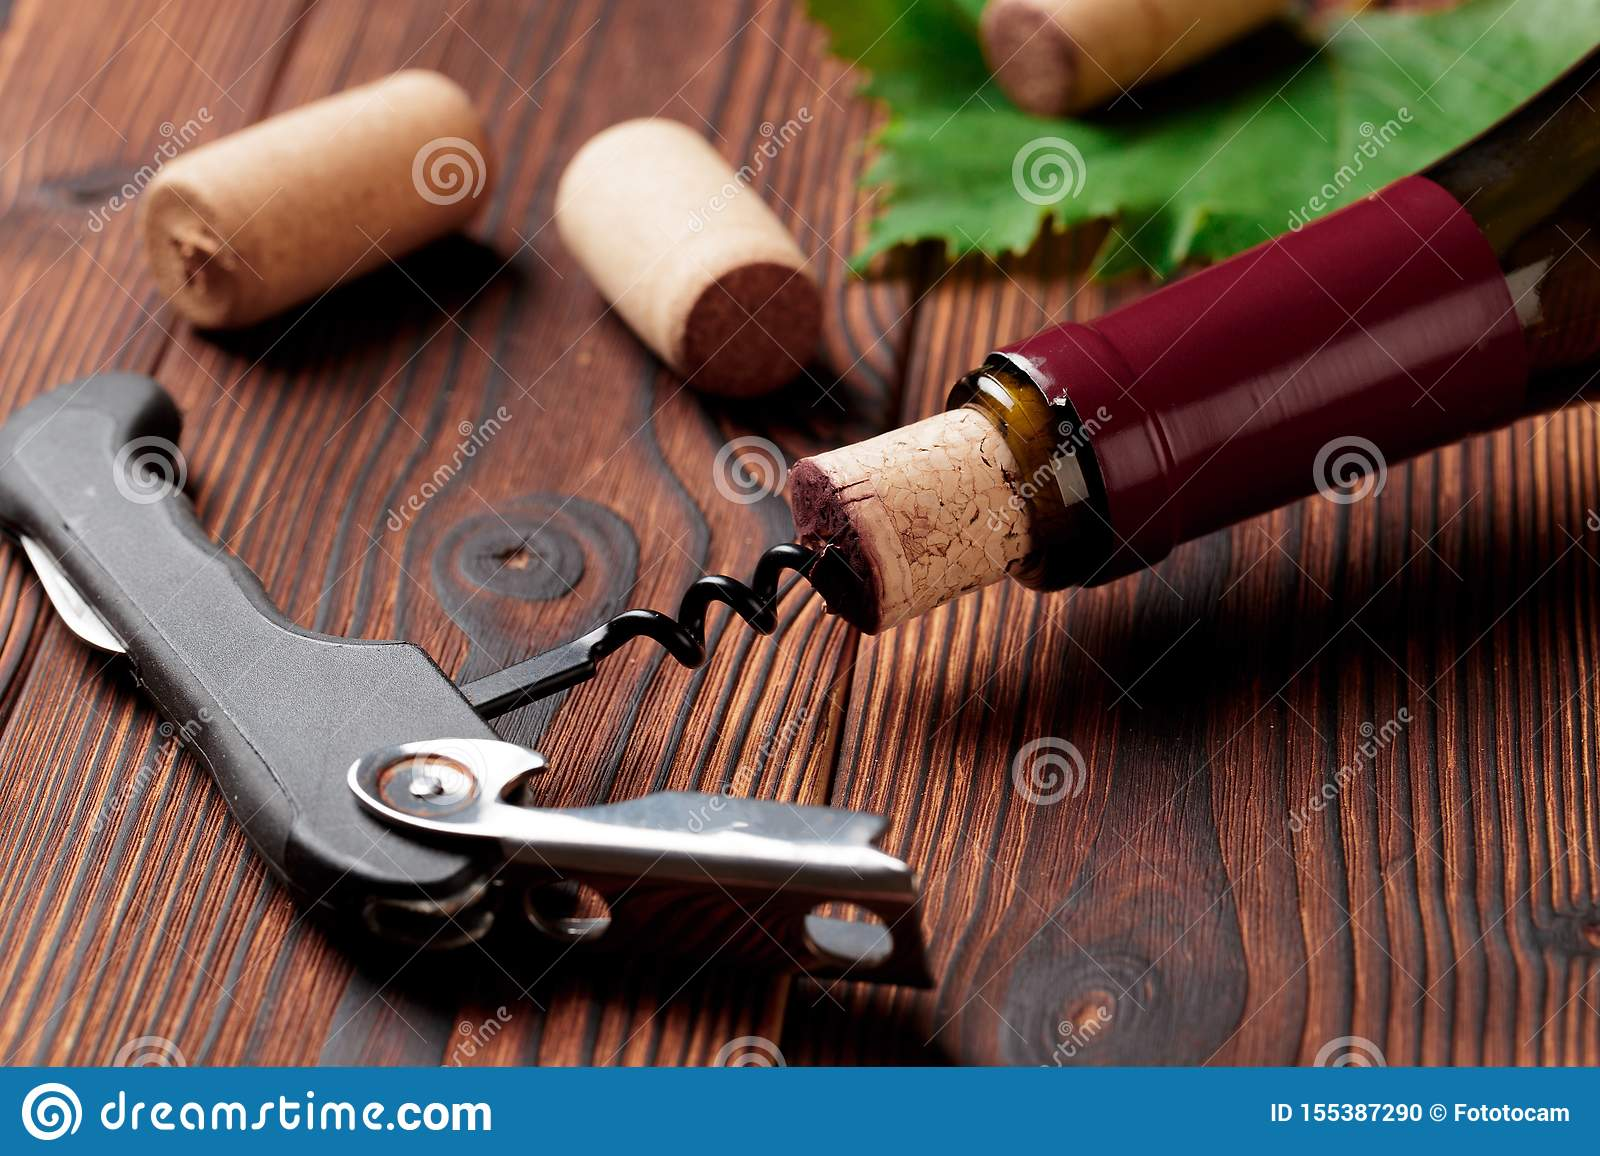 Corkscrew and bottle of wine on the board - Image